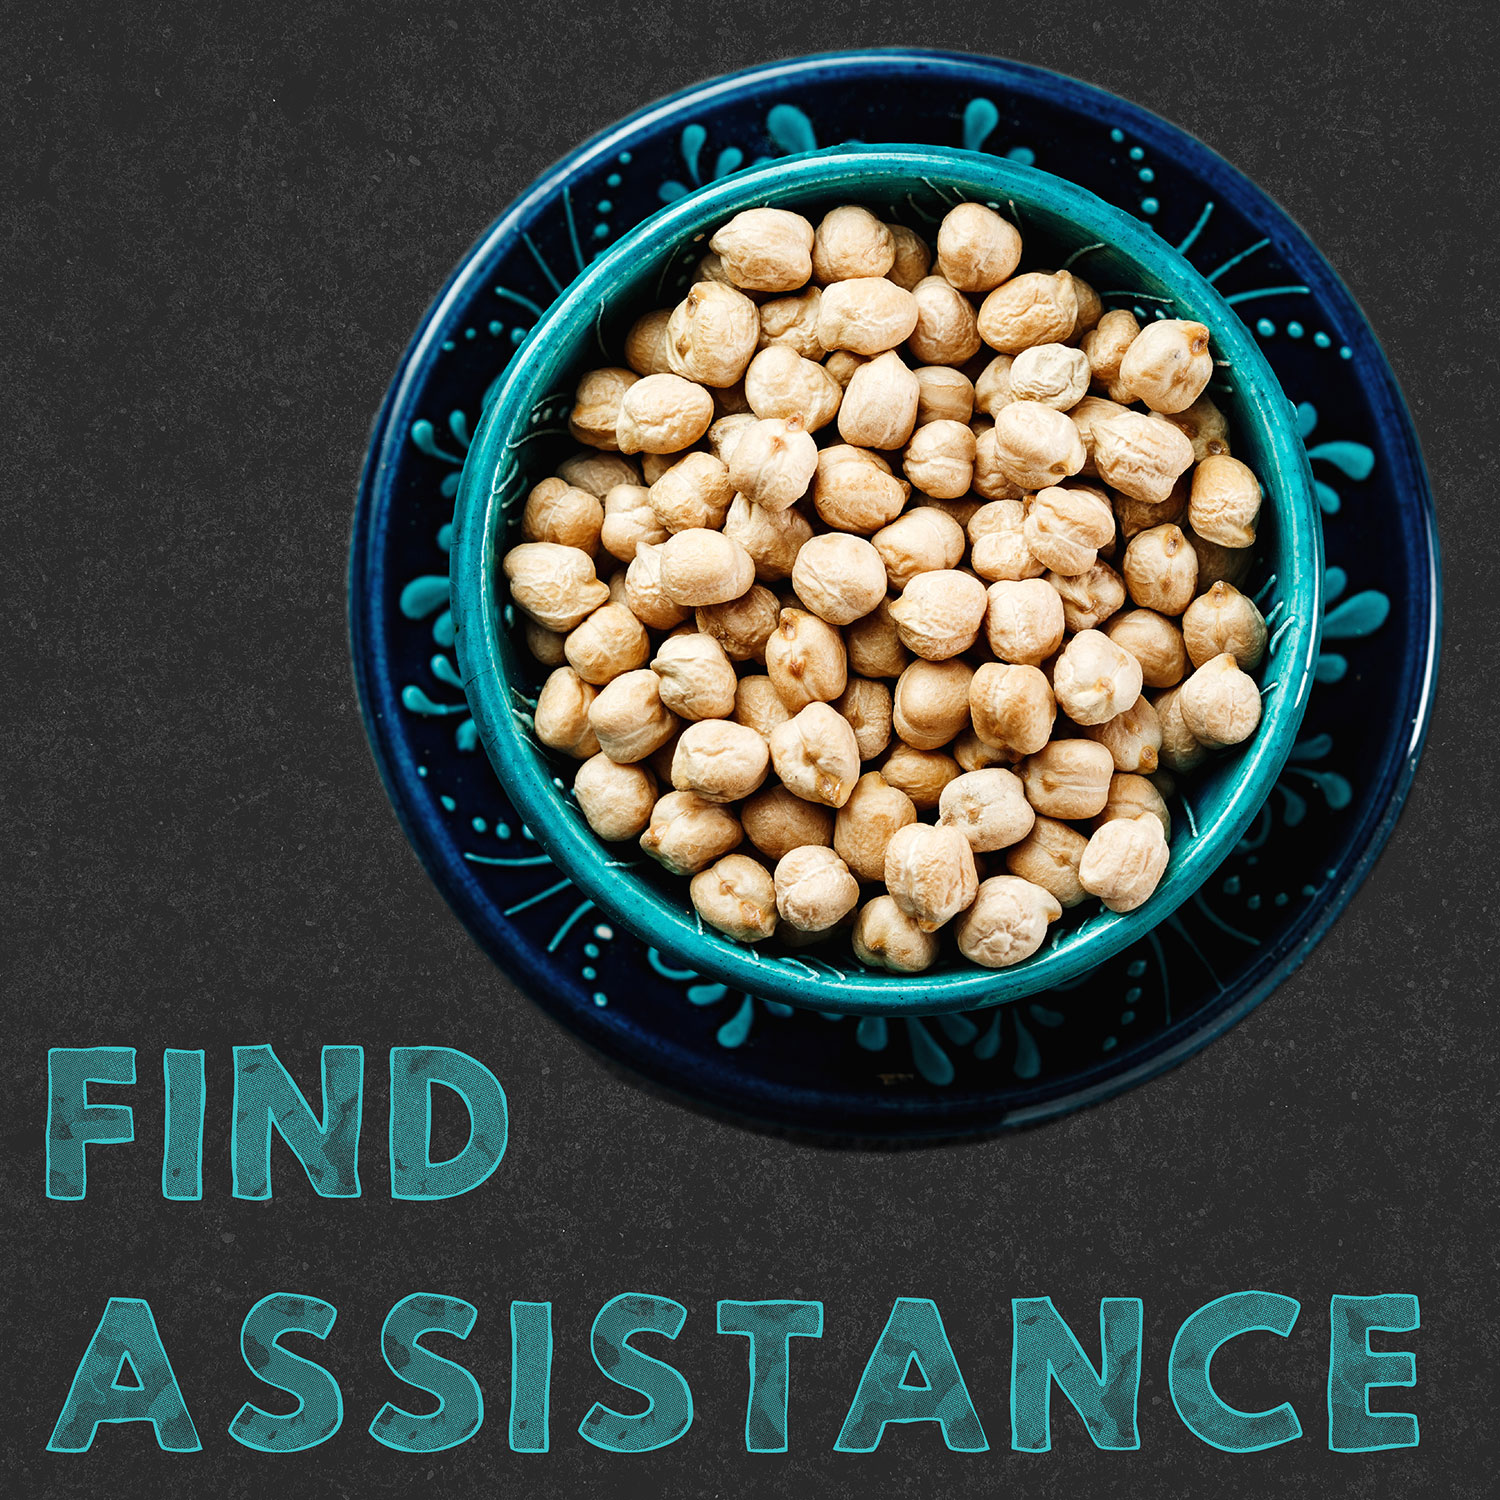 FindAssistance